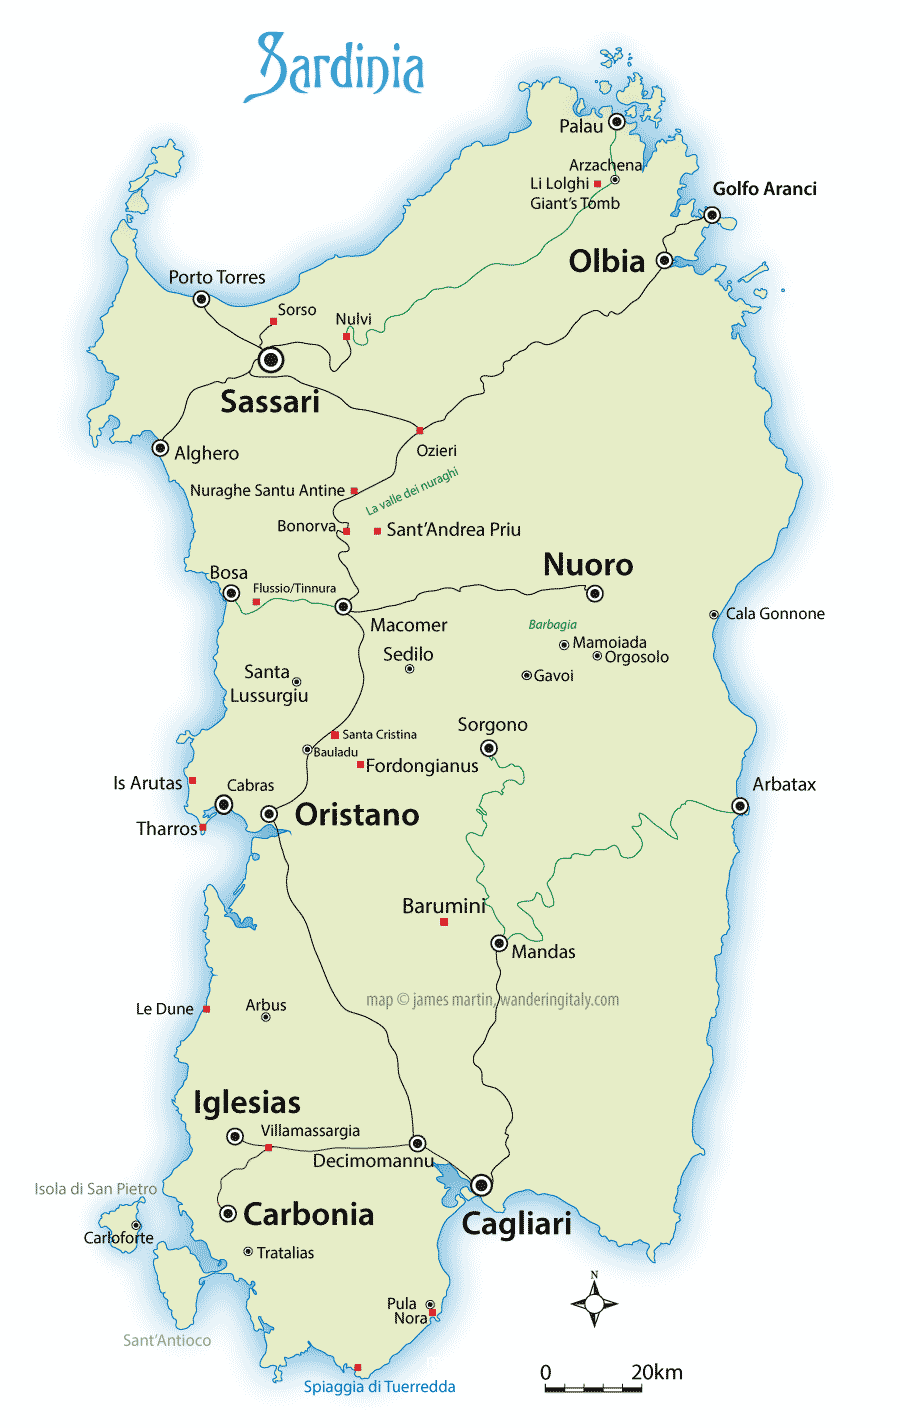 Sardinia Map and Travel Guide | Wandering Italy on map of oceania cities, map of syria cities, map of japan cities, map of the carolinas cities, map of etruscan cities, map of luxembourg cities, map of switzerland cities, u.s. map cities, map of utah cities, map of s korea cities, map of poland cities, map of guyana cities, map of rome cities, map of democratic republic of congo cities, map of europe cities, map of french cities, map of central mexico cities, map of mid atlantic cities, map of gulf of mexico cities, map of niger cities,